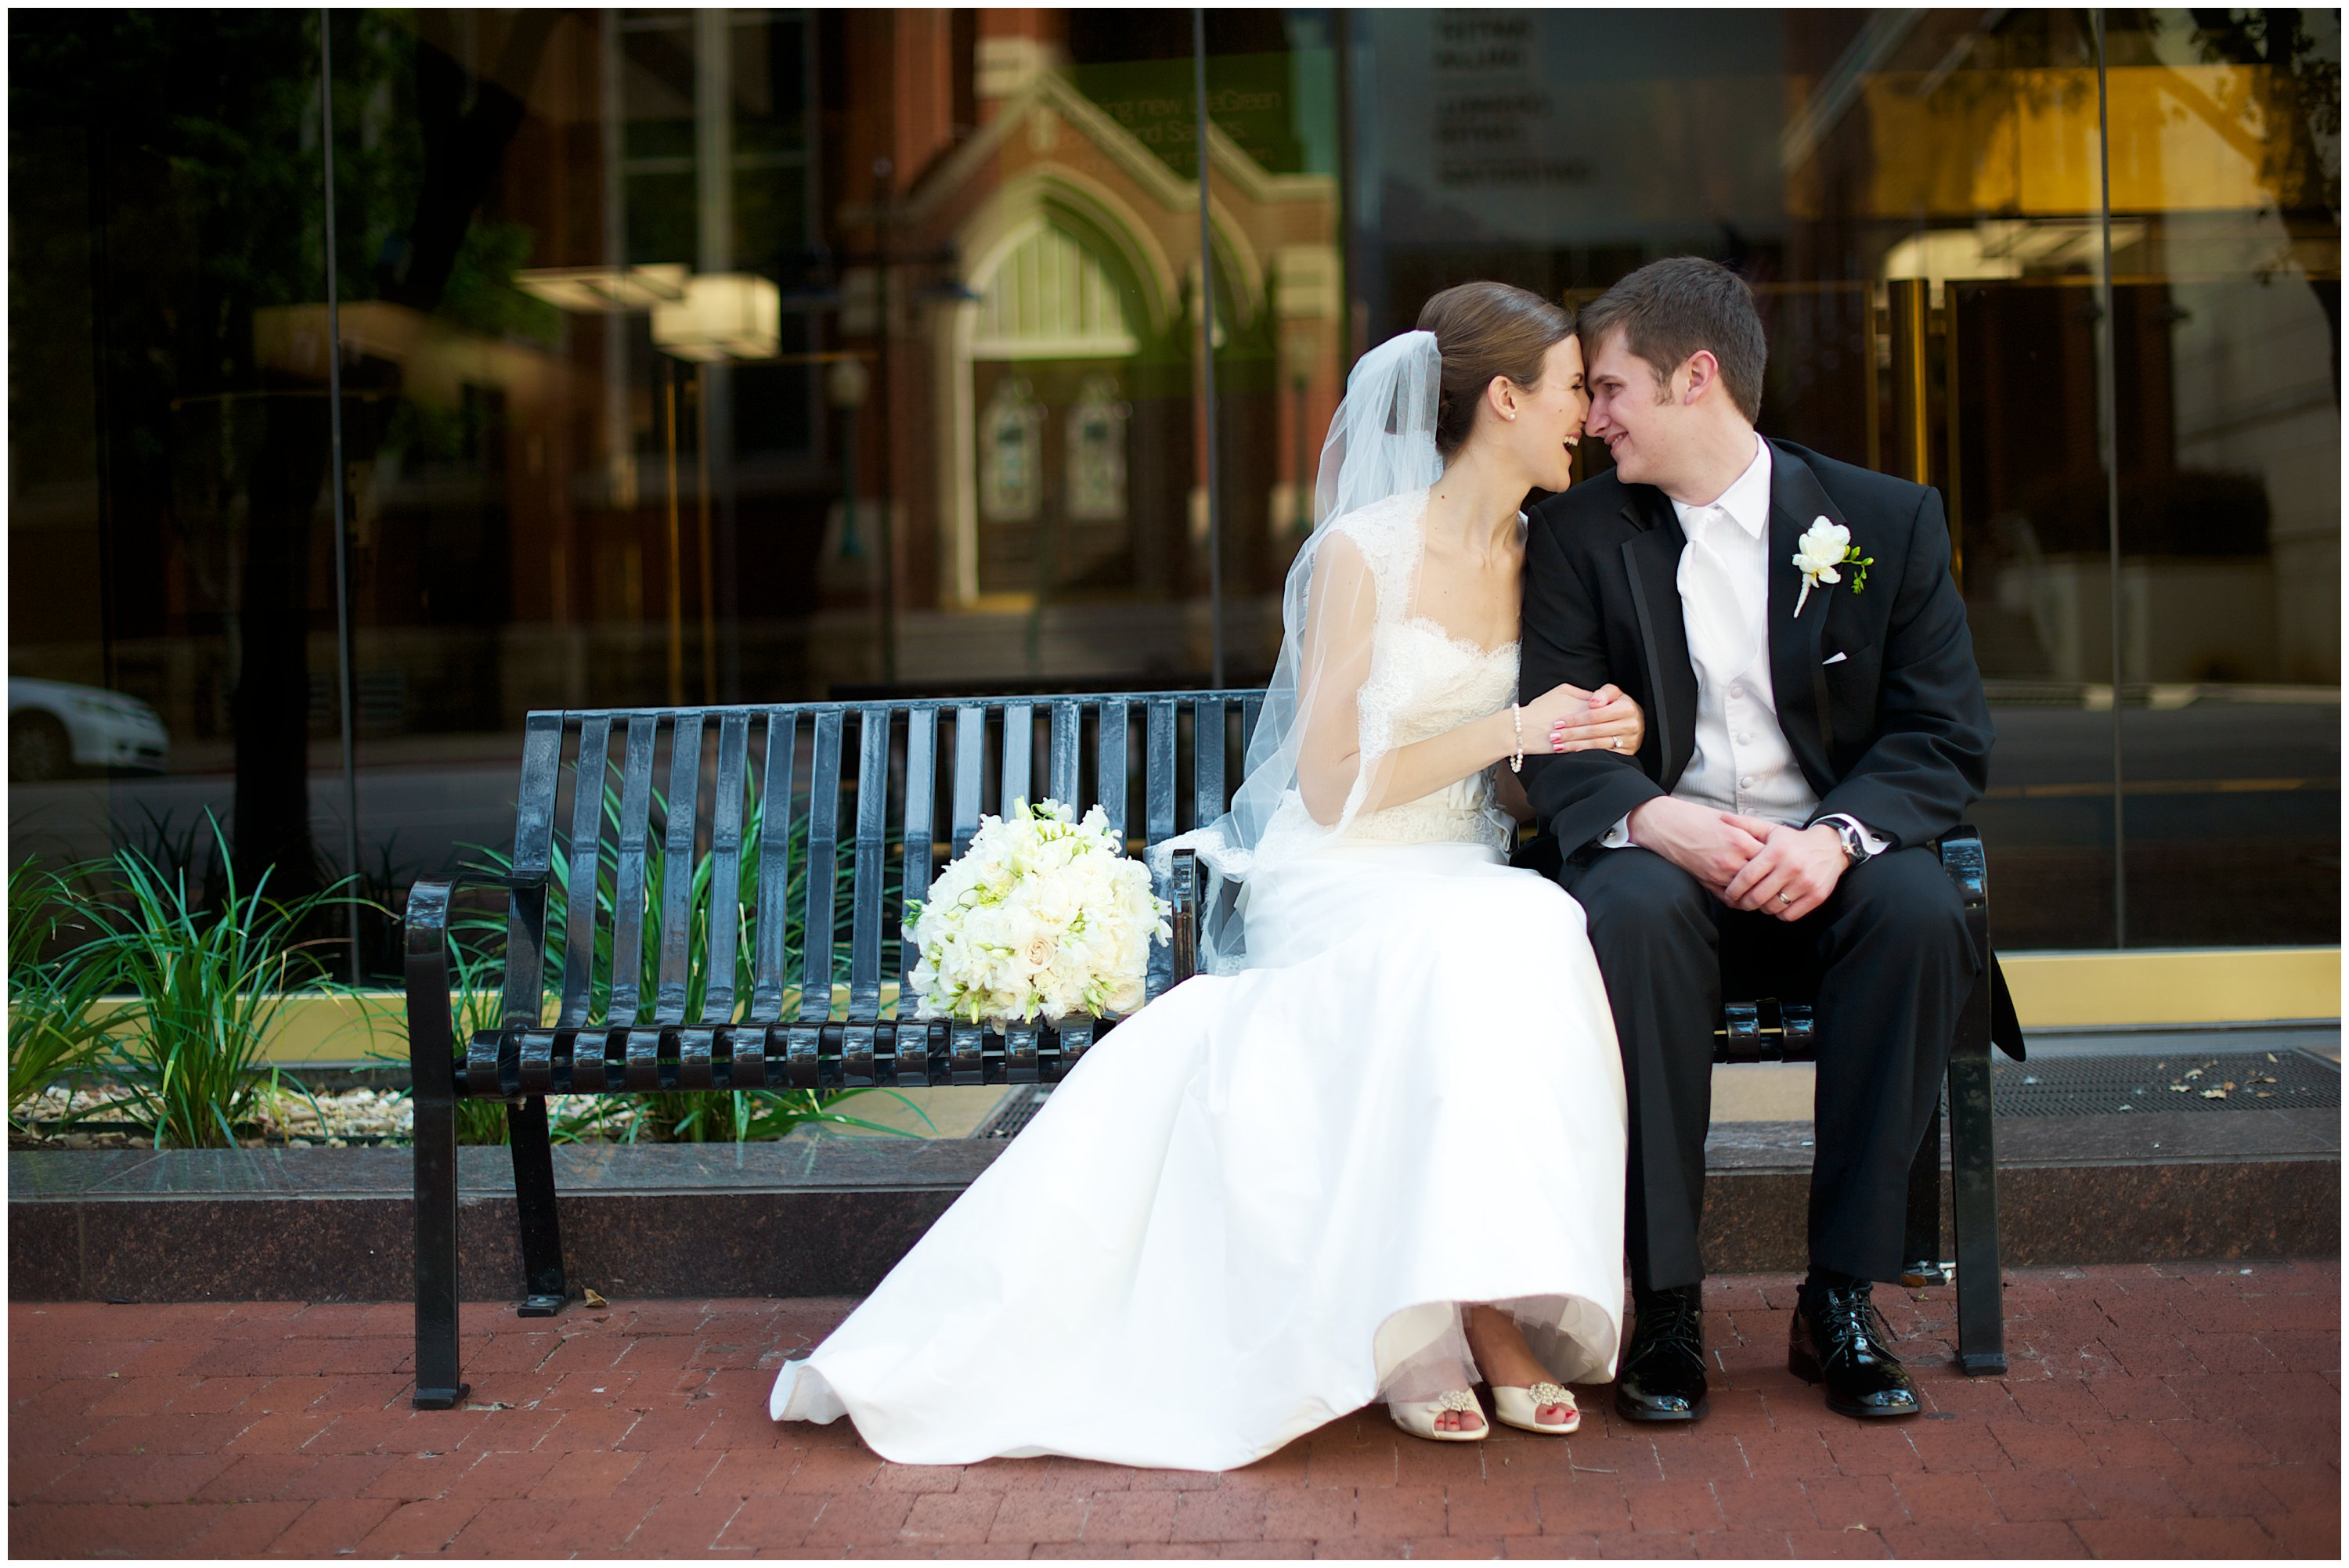 Emily + Duke  |  Dallas, TX Wedding